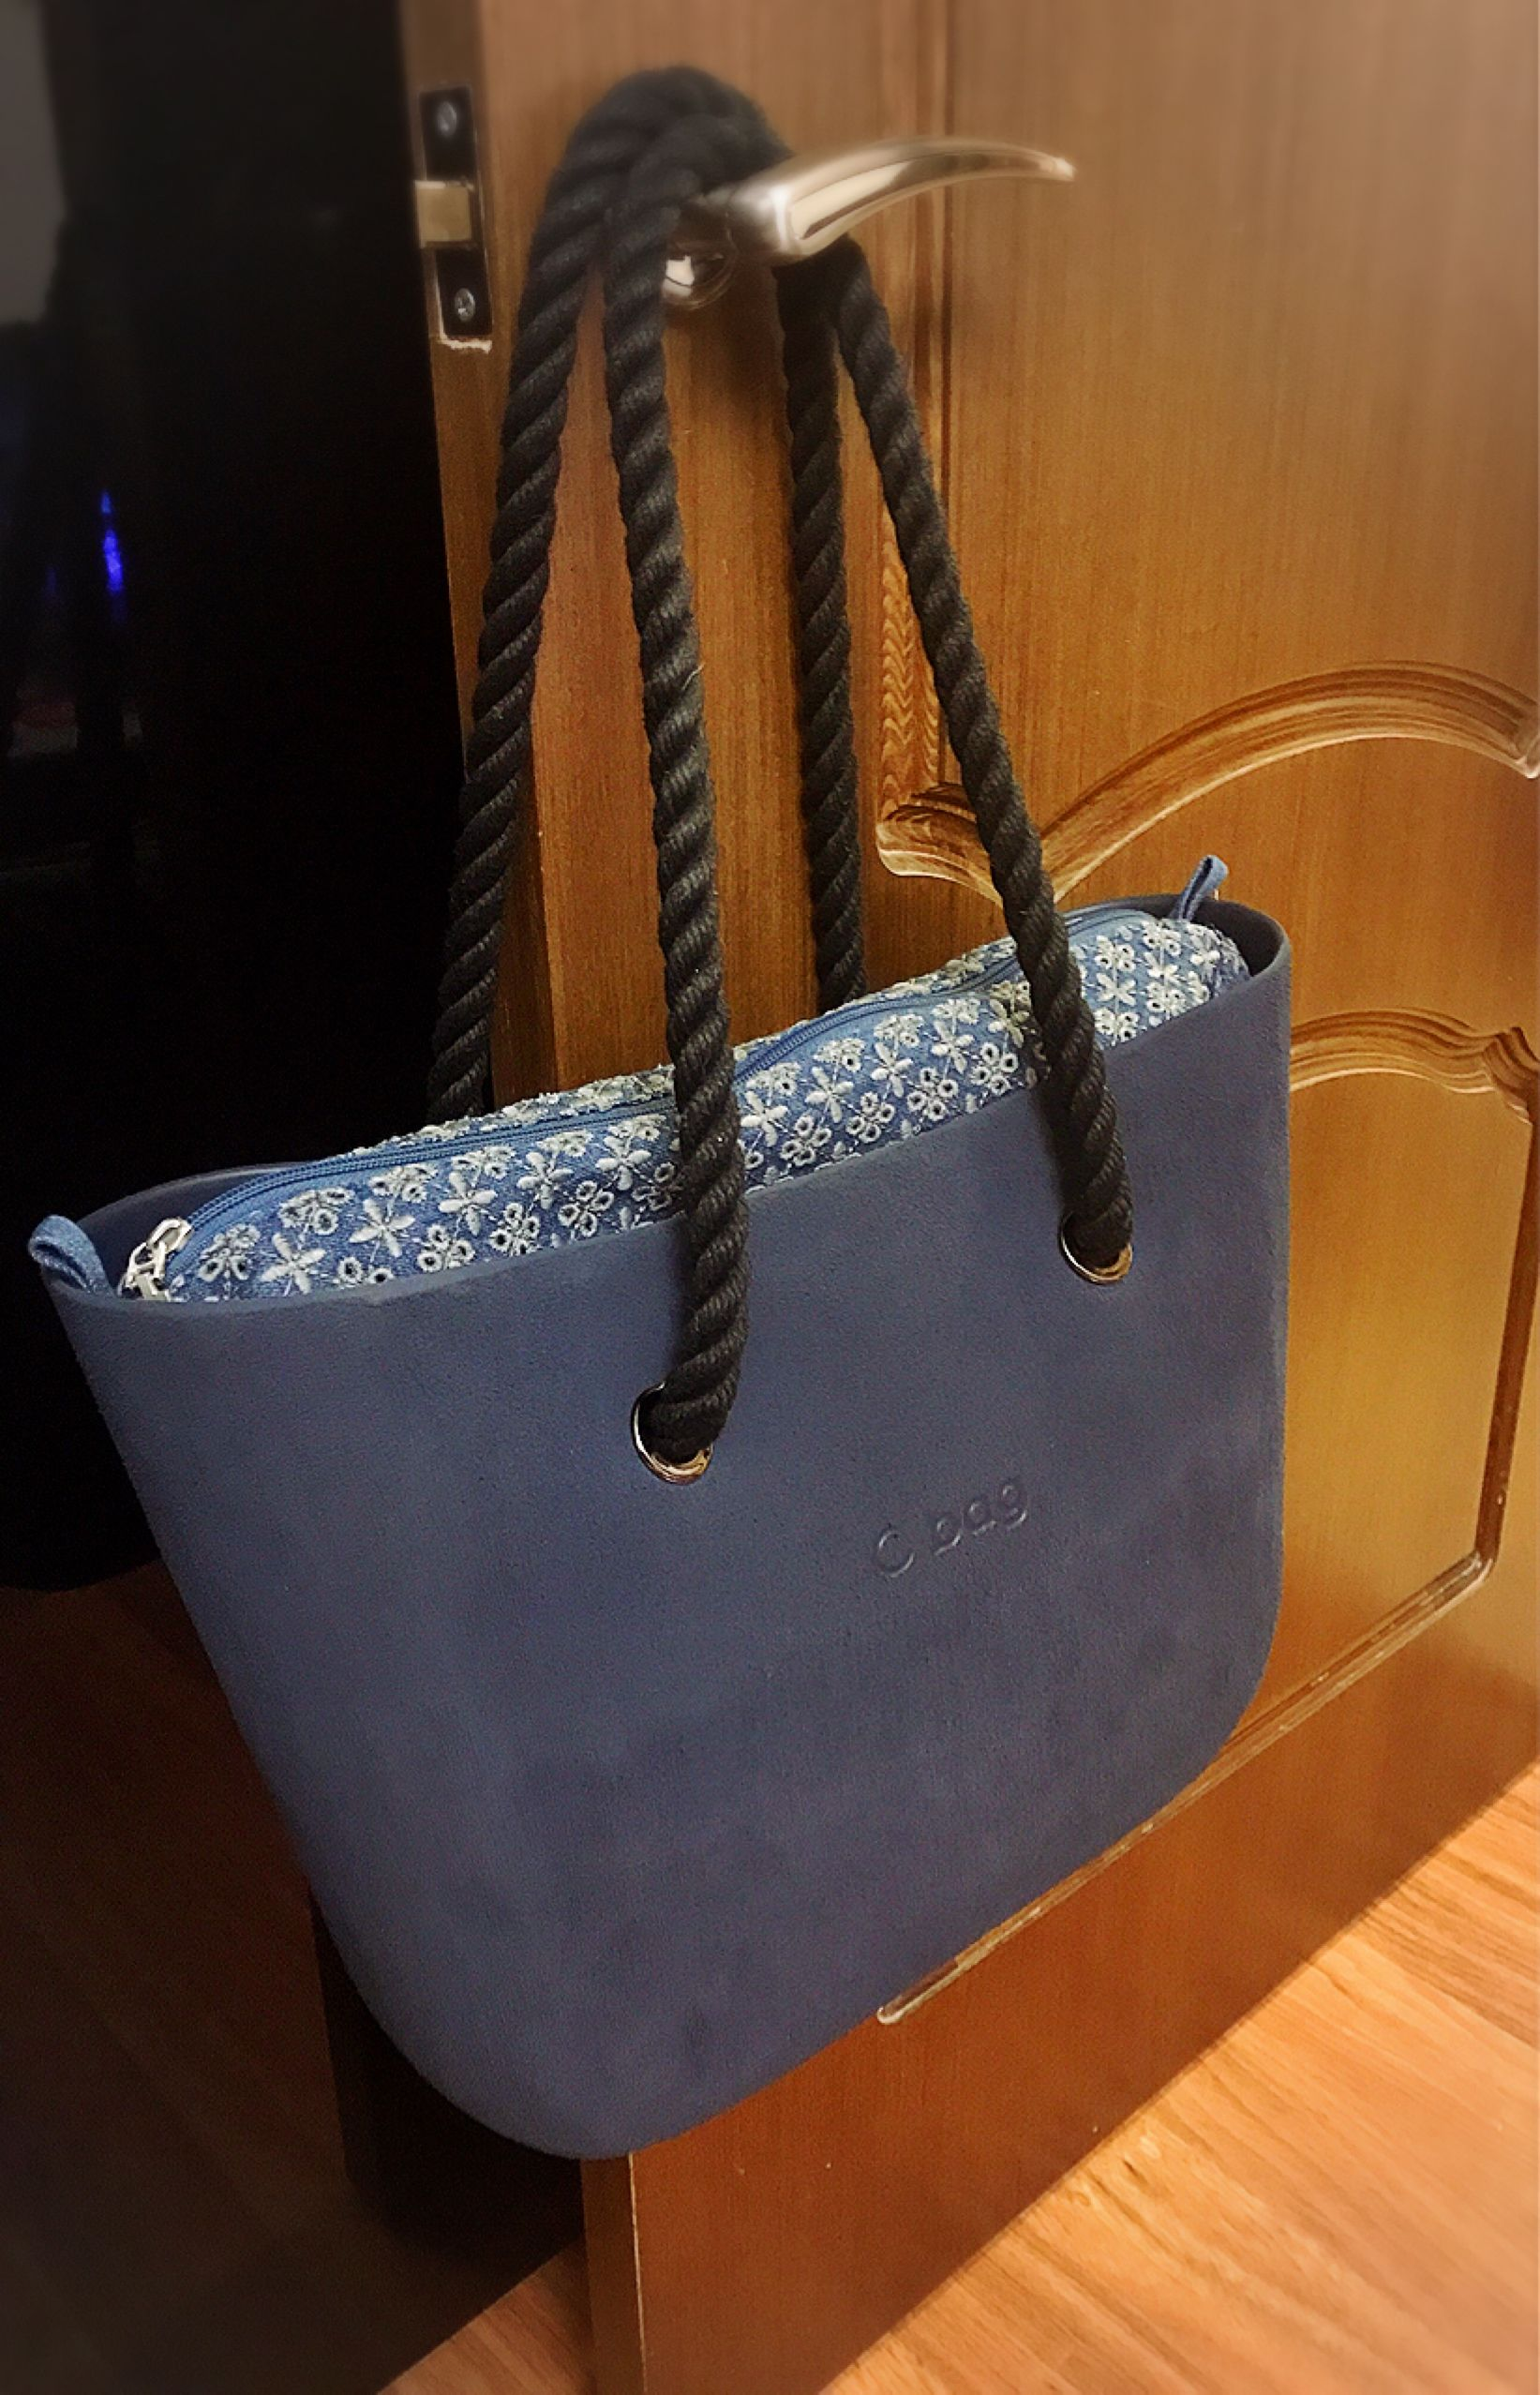 O bag brush blu navy & sacca interna sangallo su denim grigio | O ...